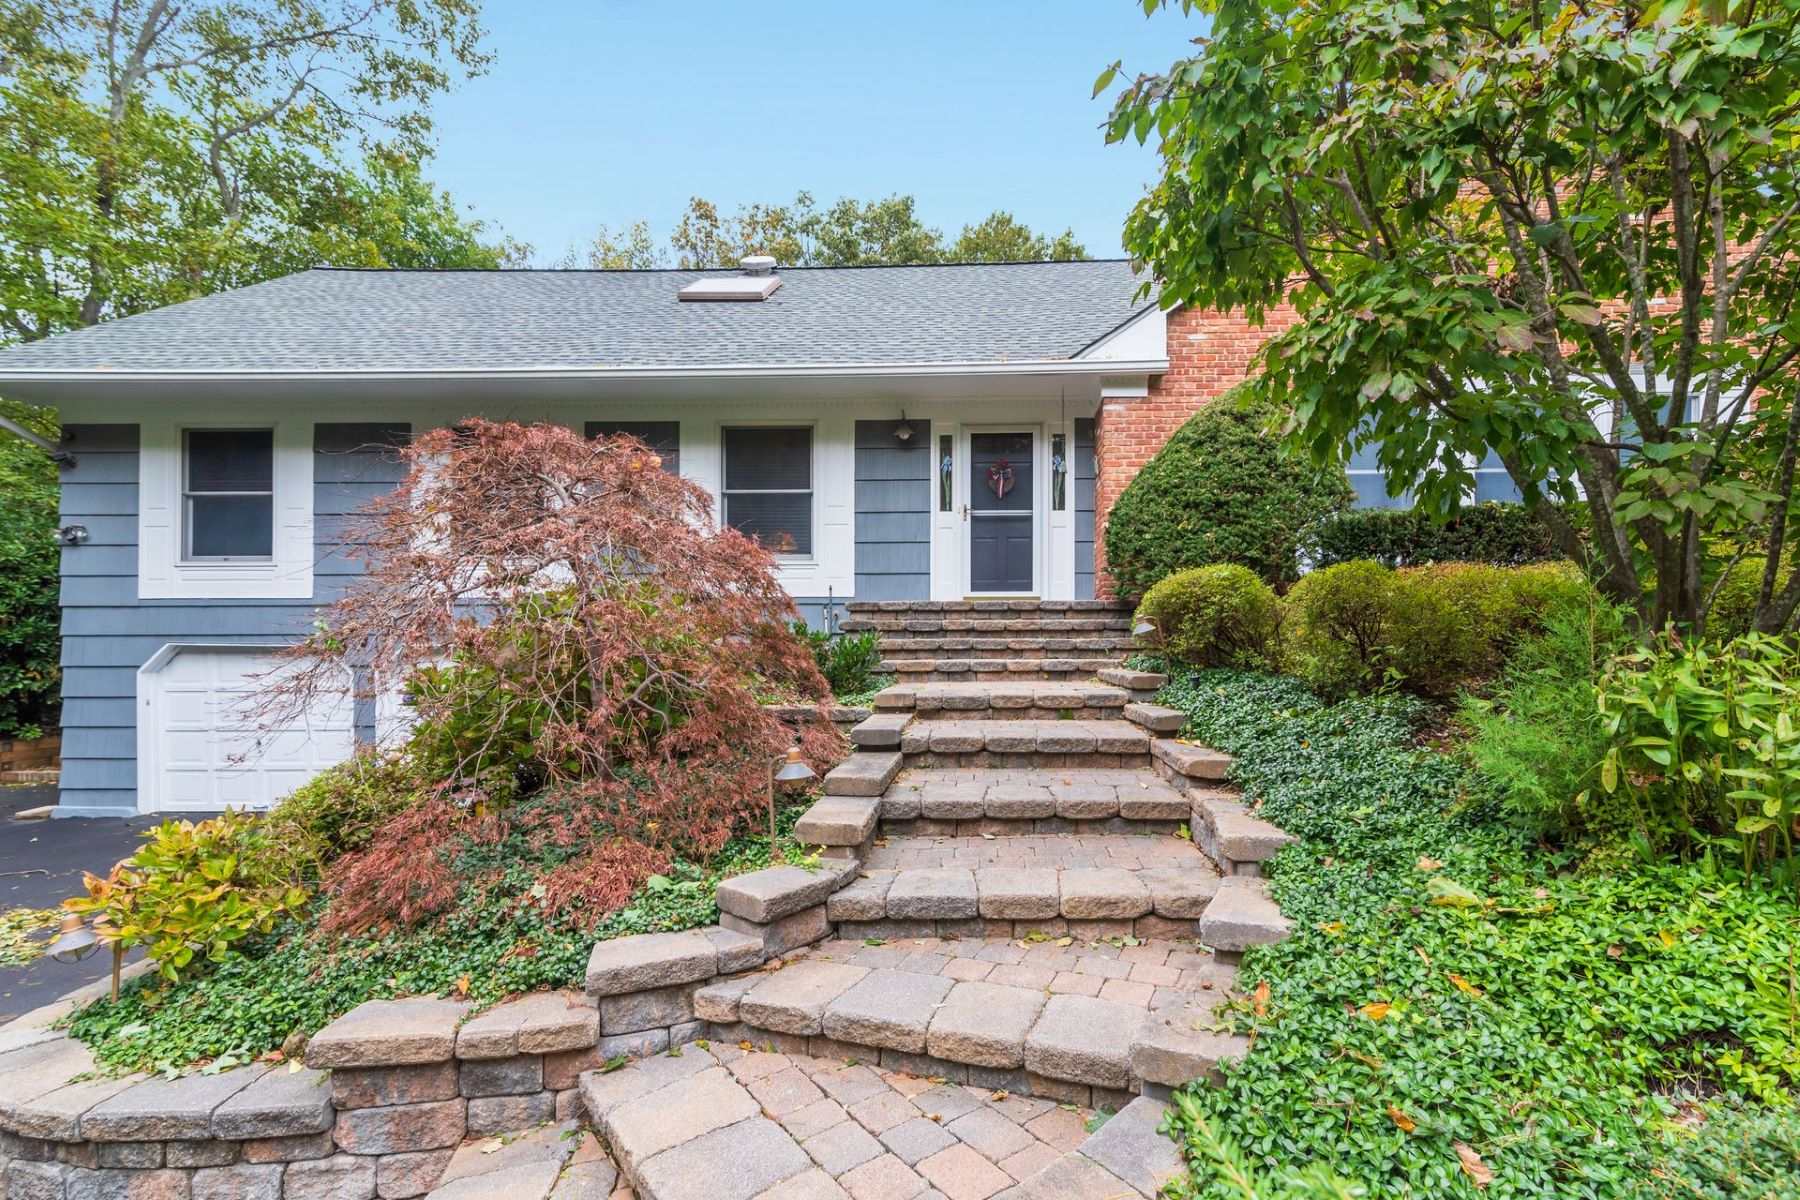 Single Family Homes for Sale at Cold Spring Hrbr 8 Thicket Dr Cold Spring Harbor, New York 11724 United States